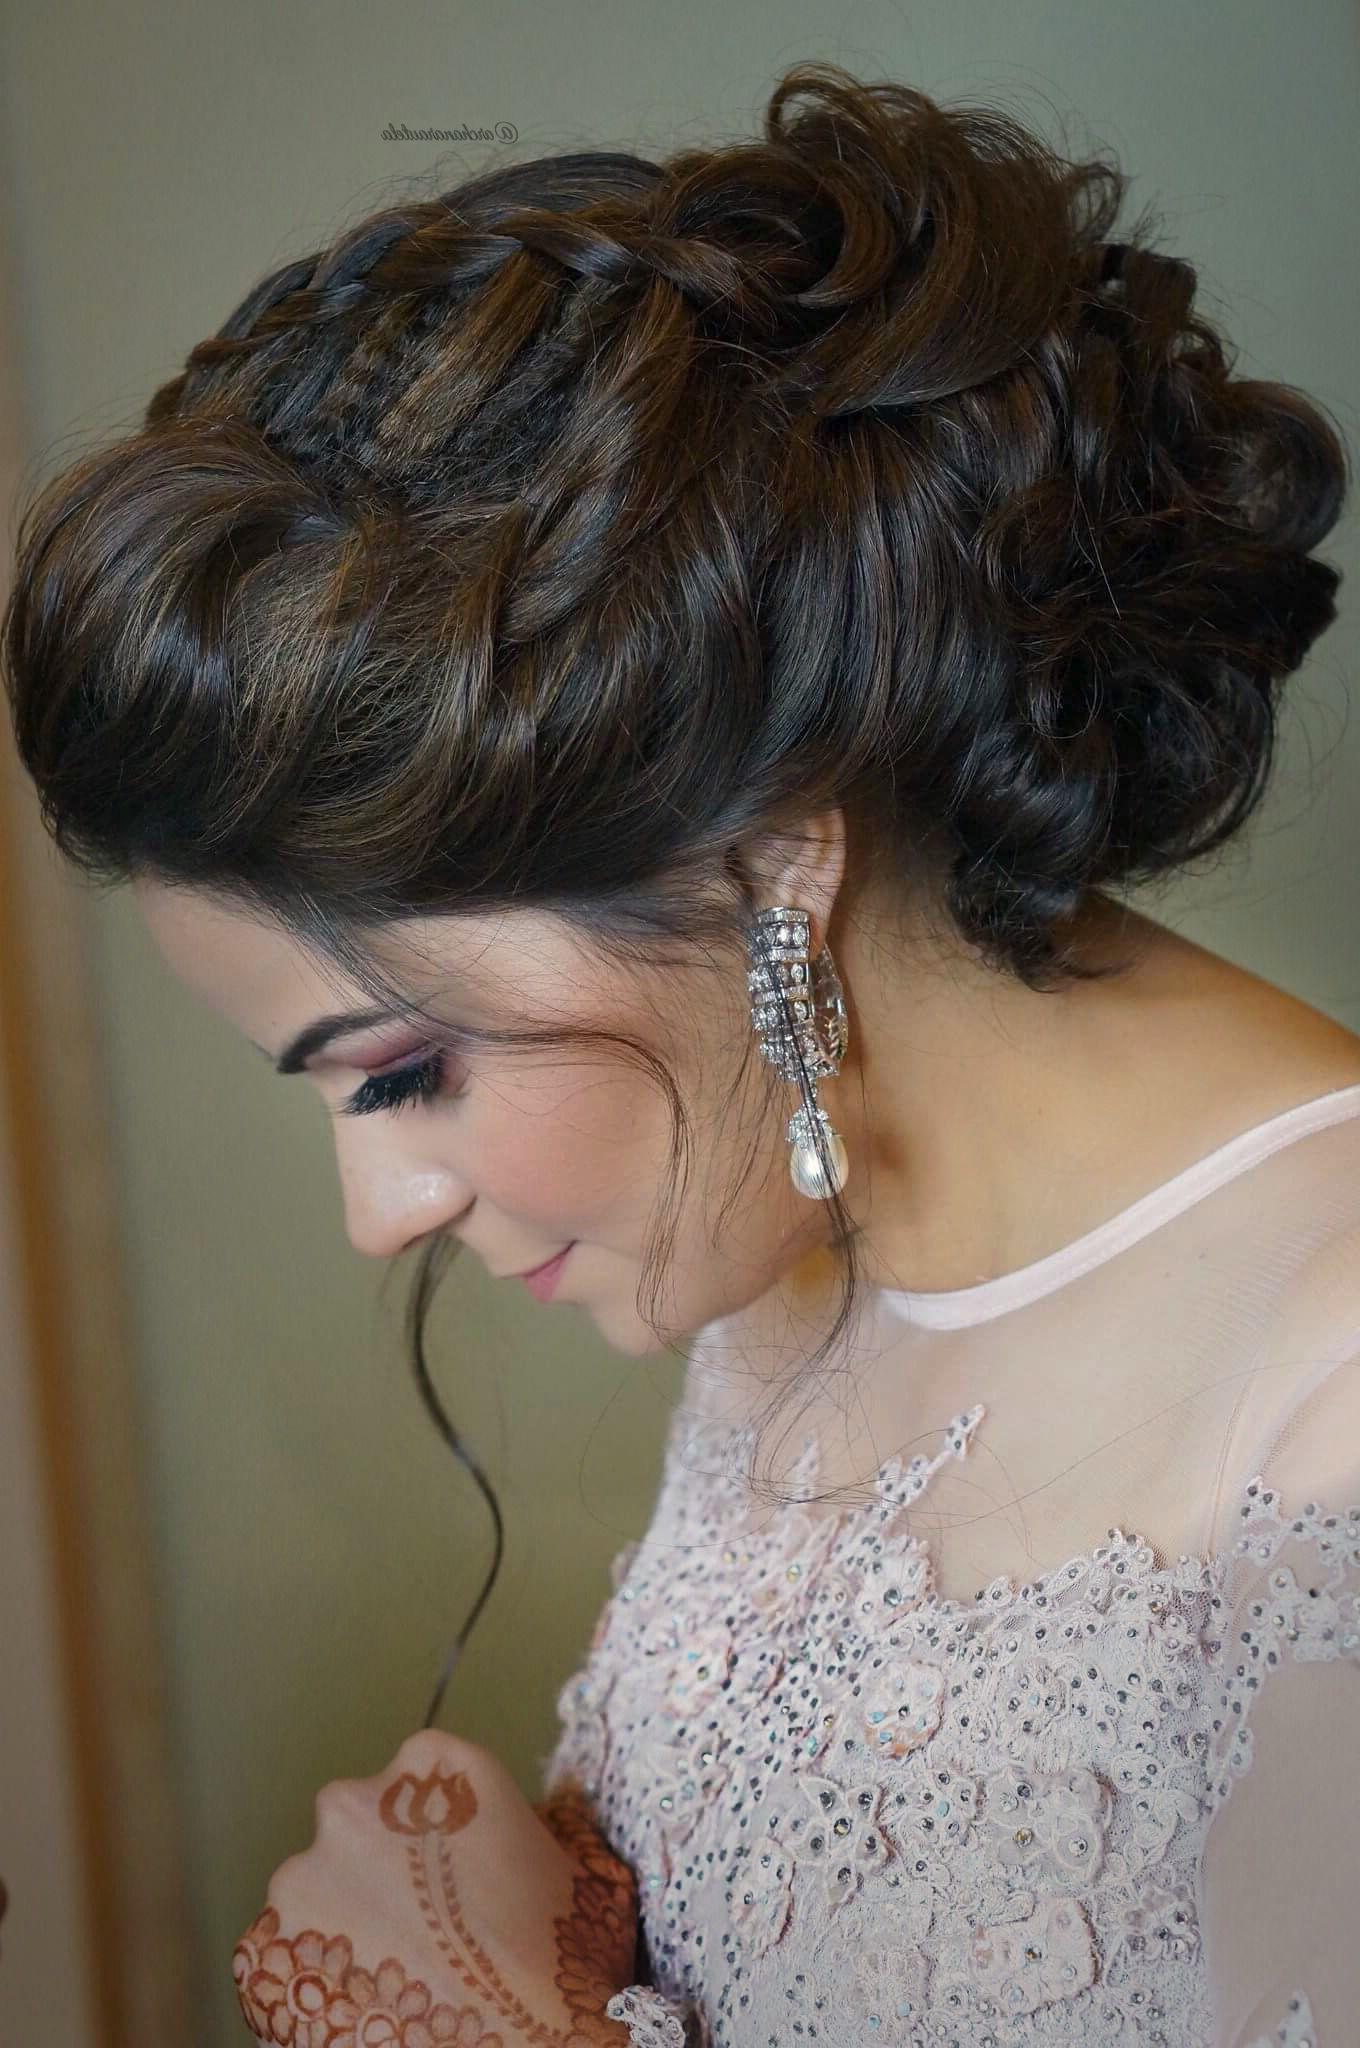 Nidhi👰🏼💍 Looking Gorgeous With Braided Messy Bun 💍💄 Hair Pertaining To Well Liked Side Bun Prom Hairstyles With Black Feathers (View 8 of 20)